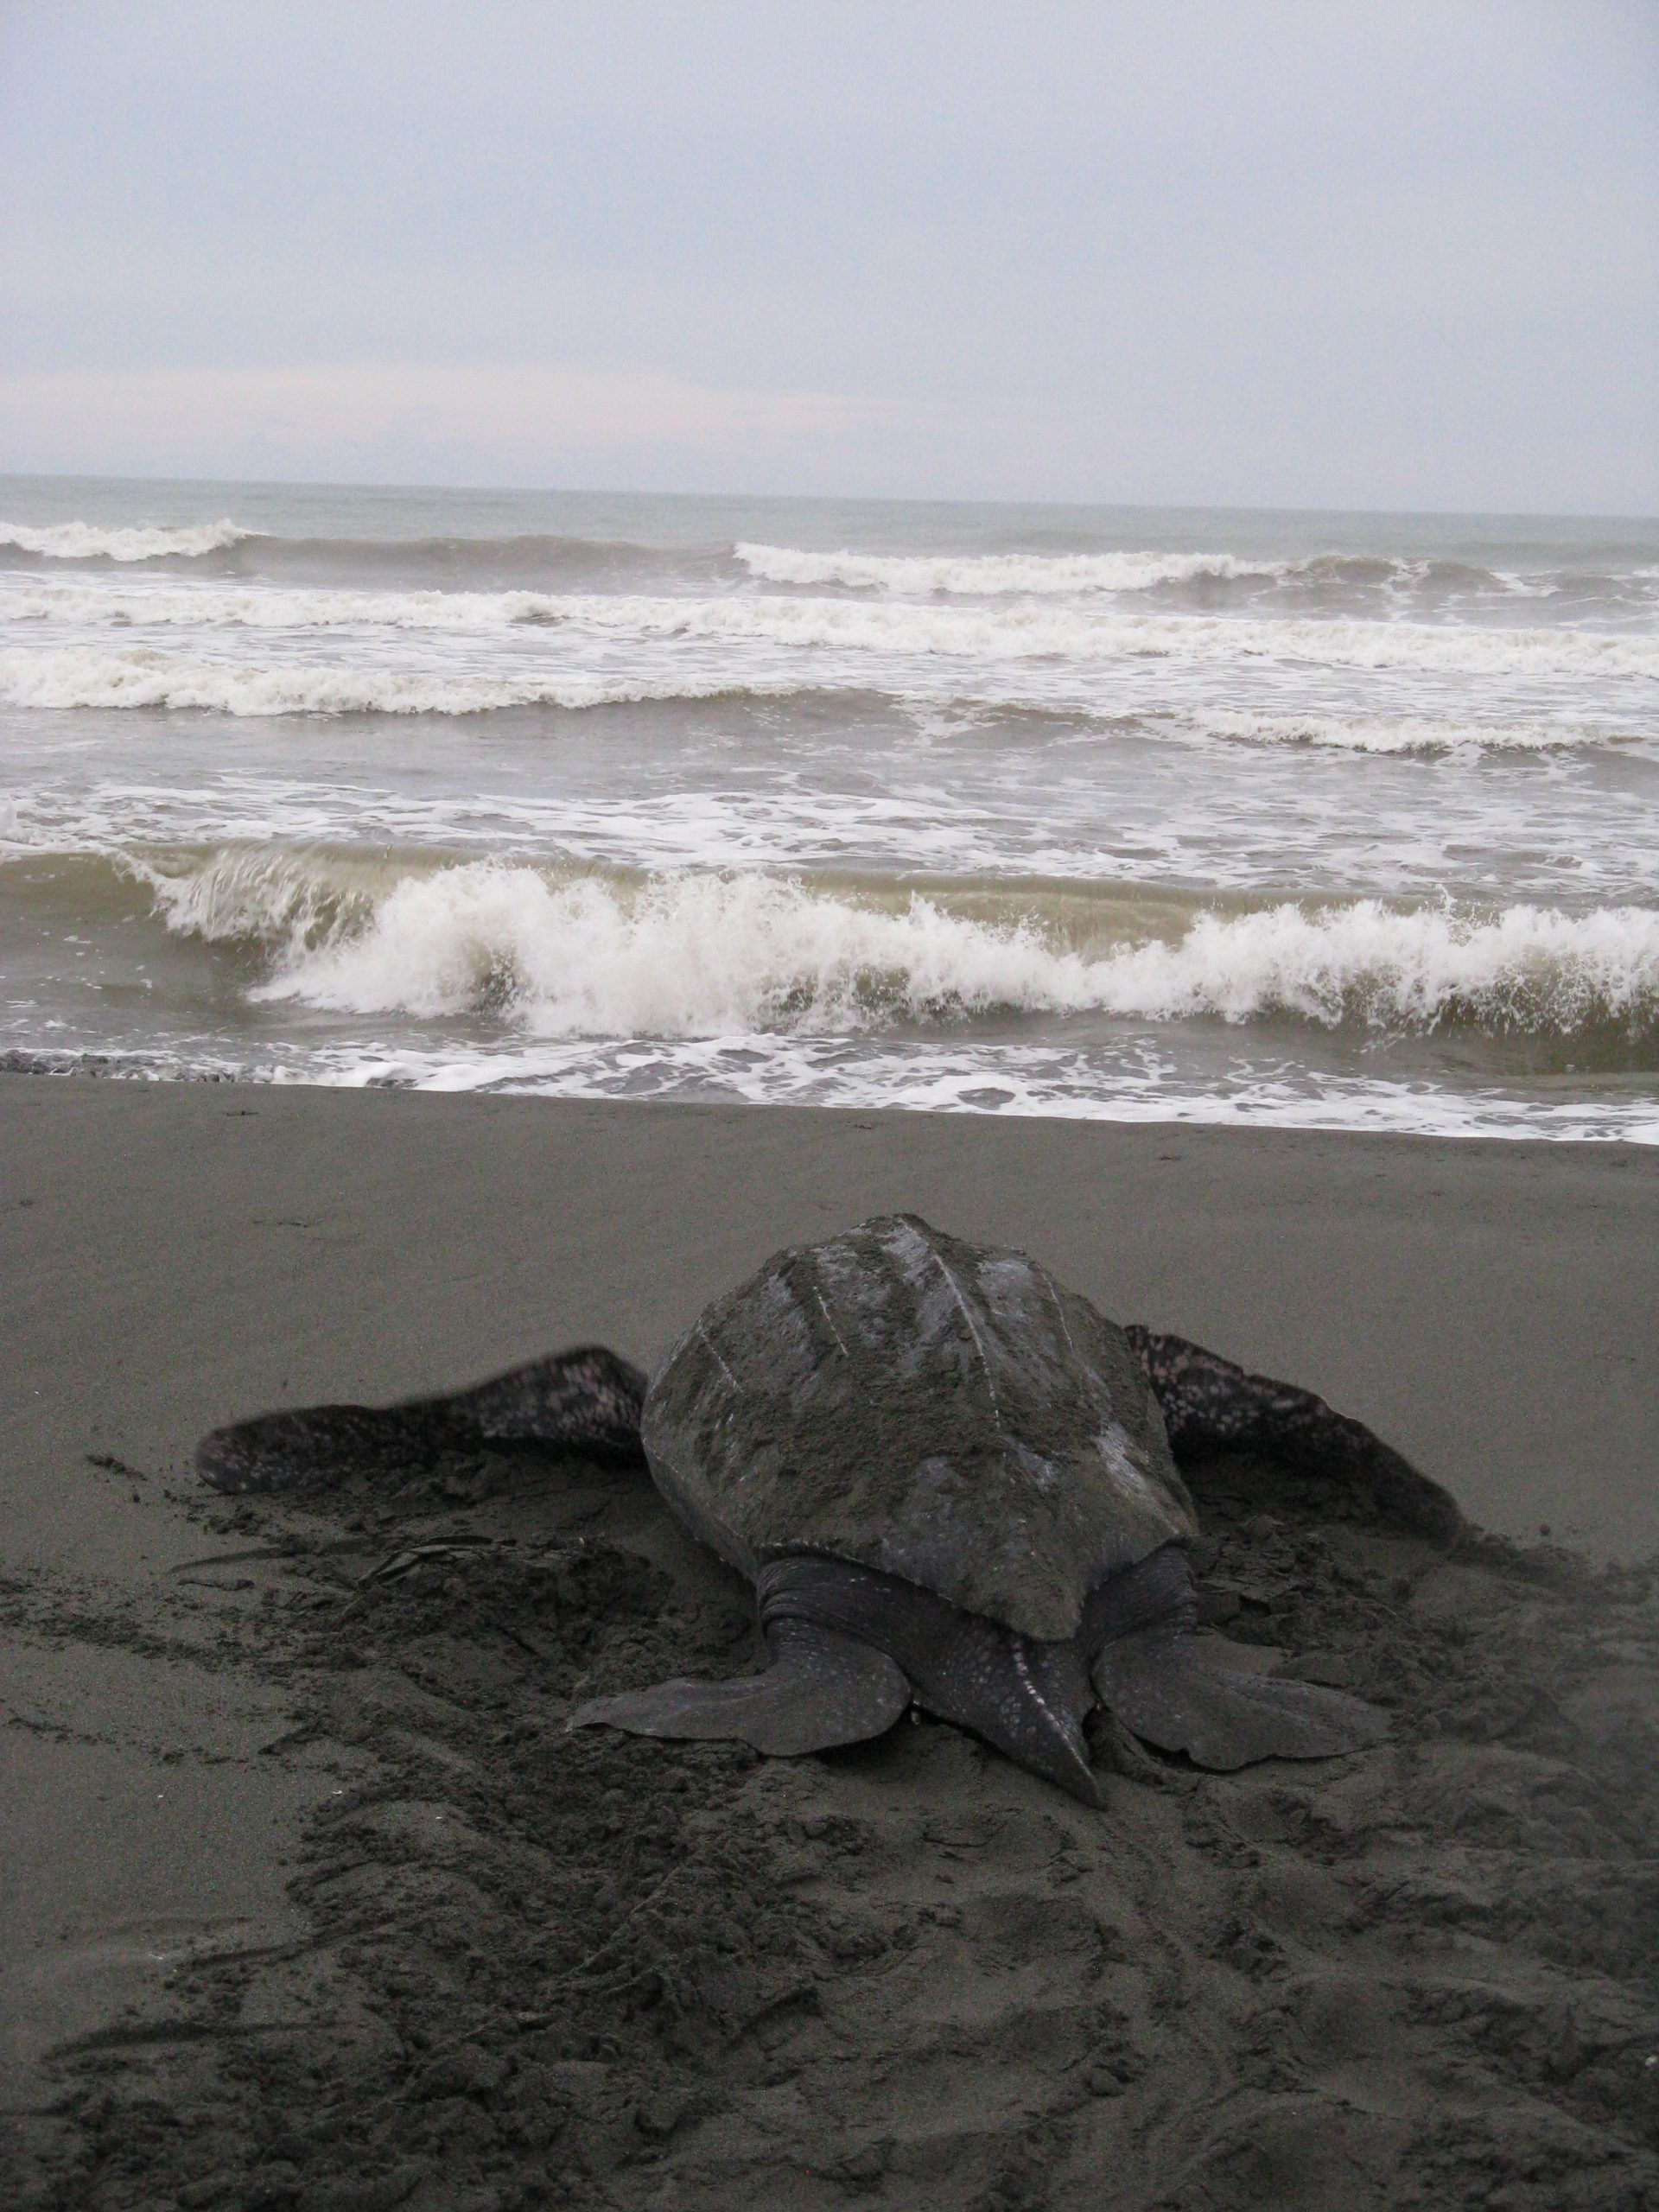 Endangered leatherback sea turtle returning to the ocean after laying eggs on a Caribbean beach.